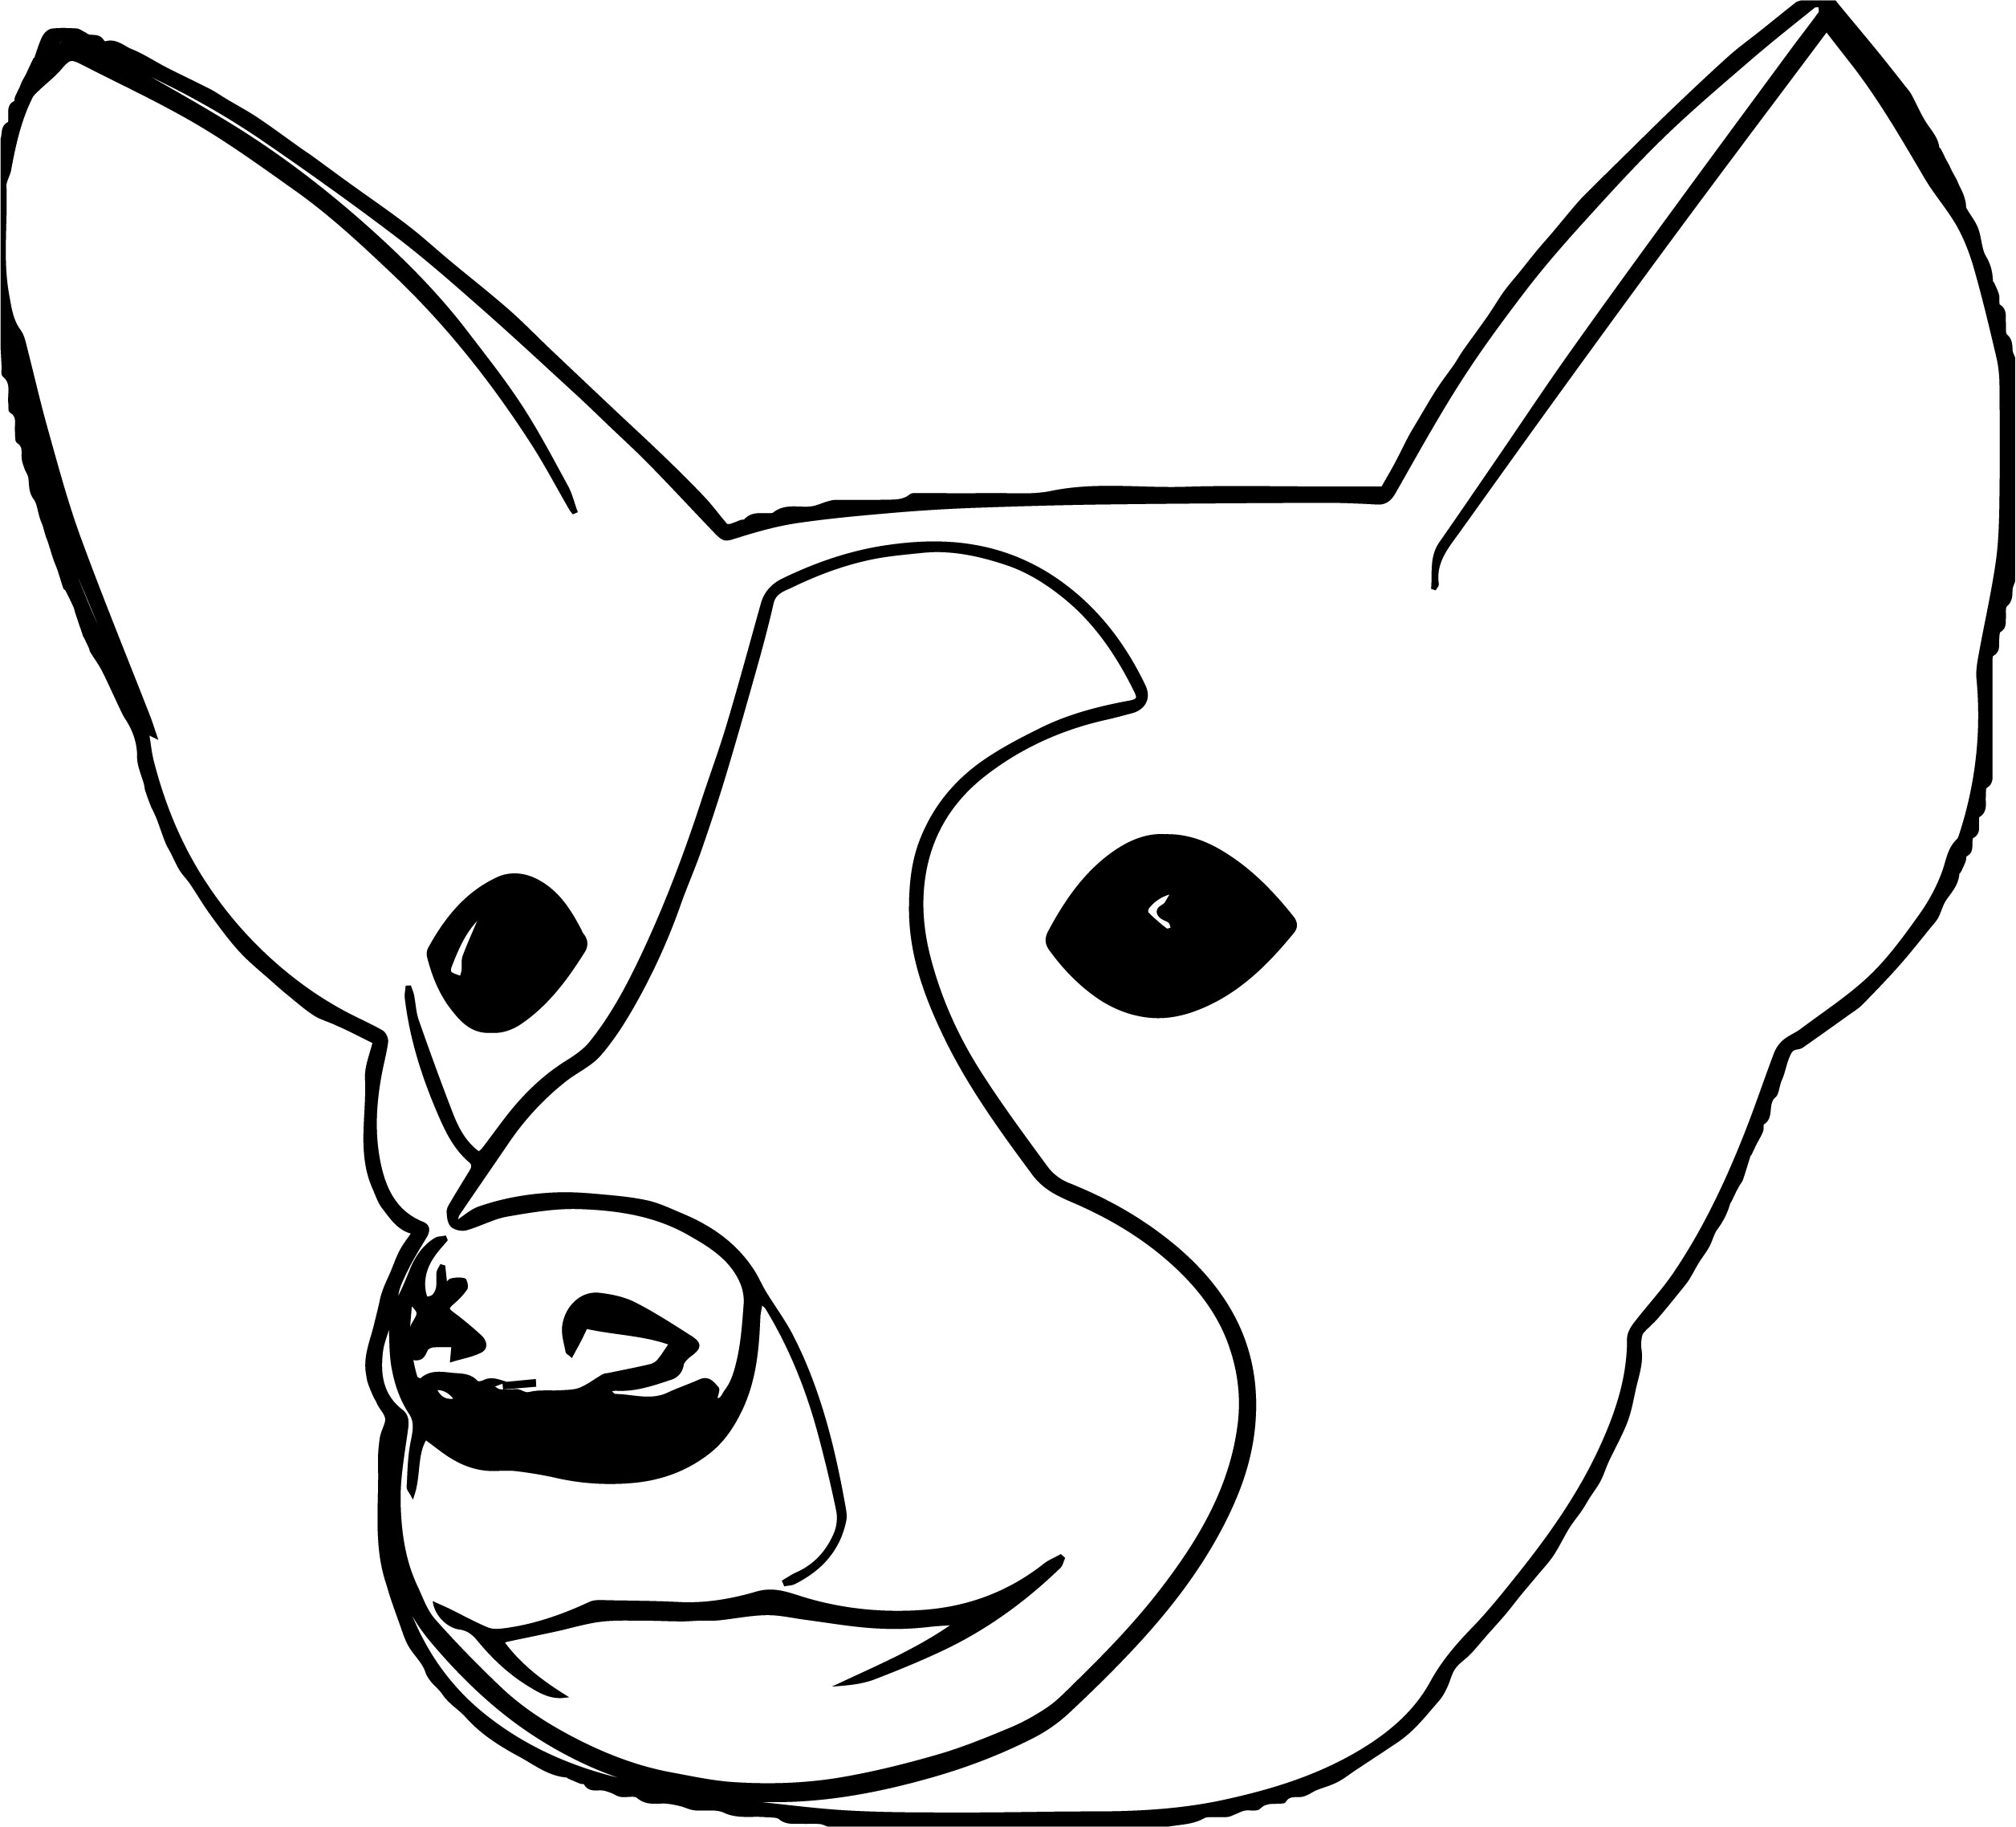 dog face coloring pages little pug sad face coloring page color luna dog pages coloring face